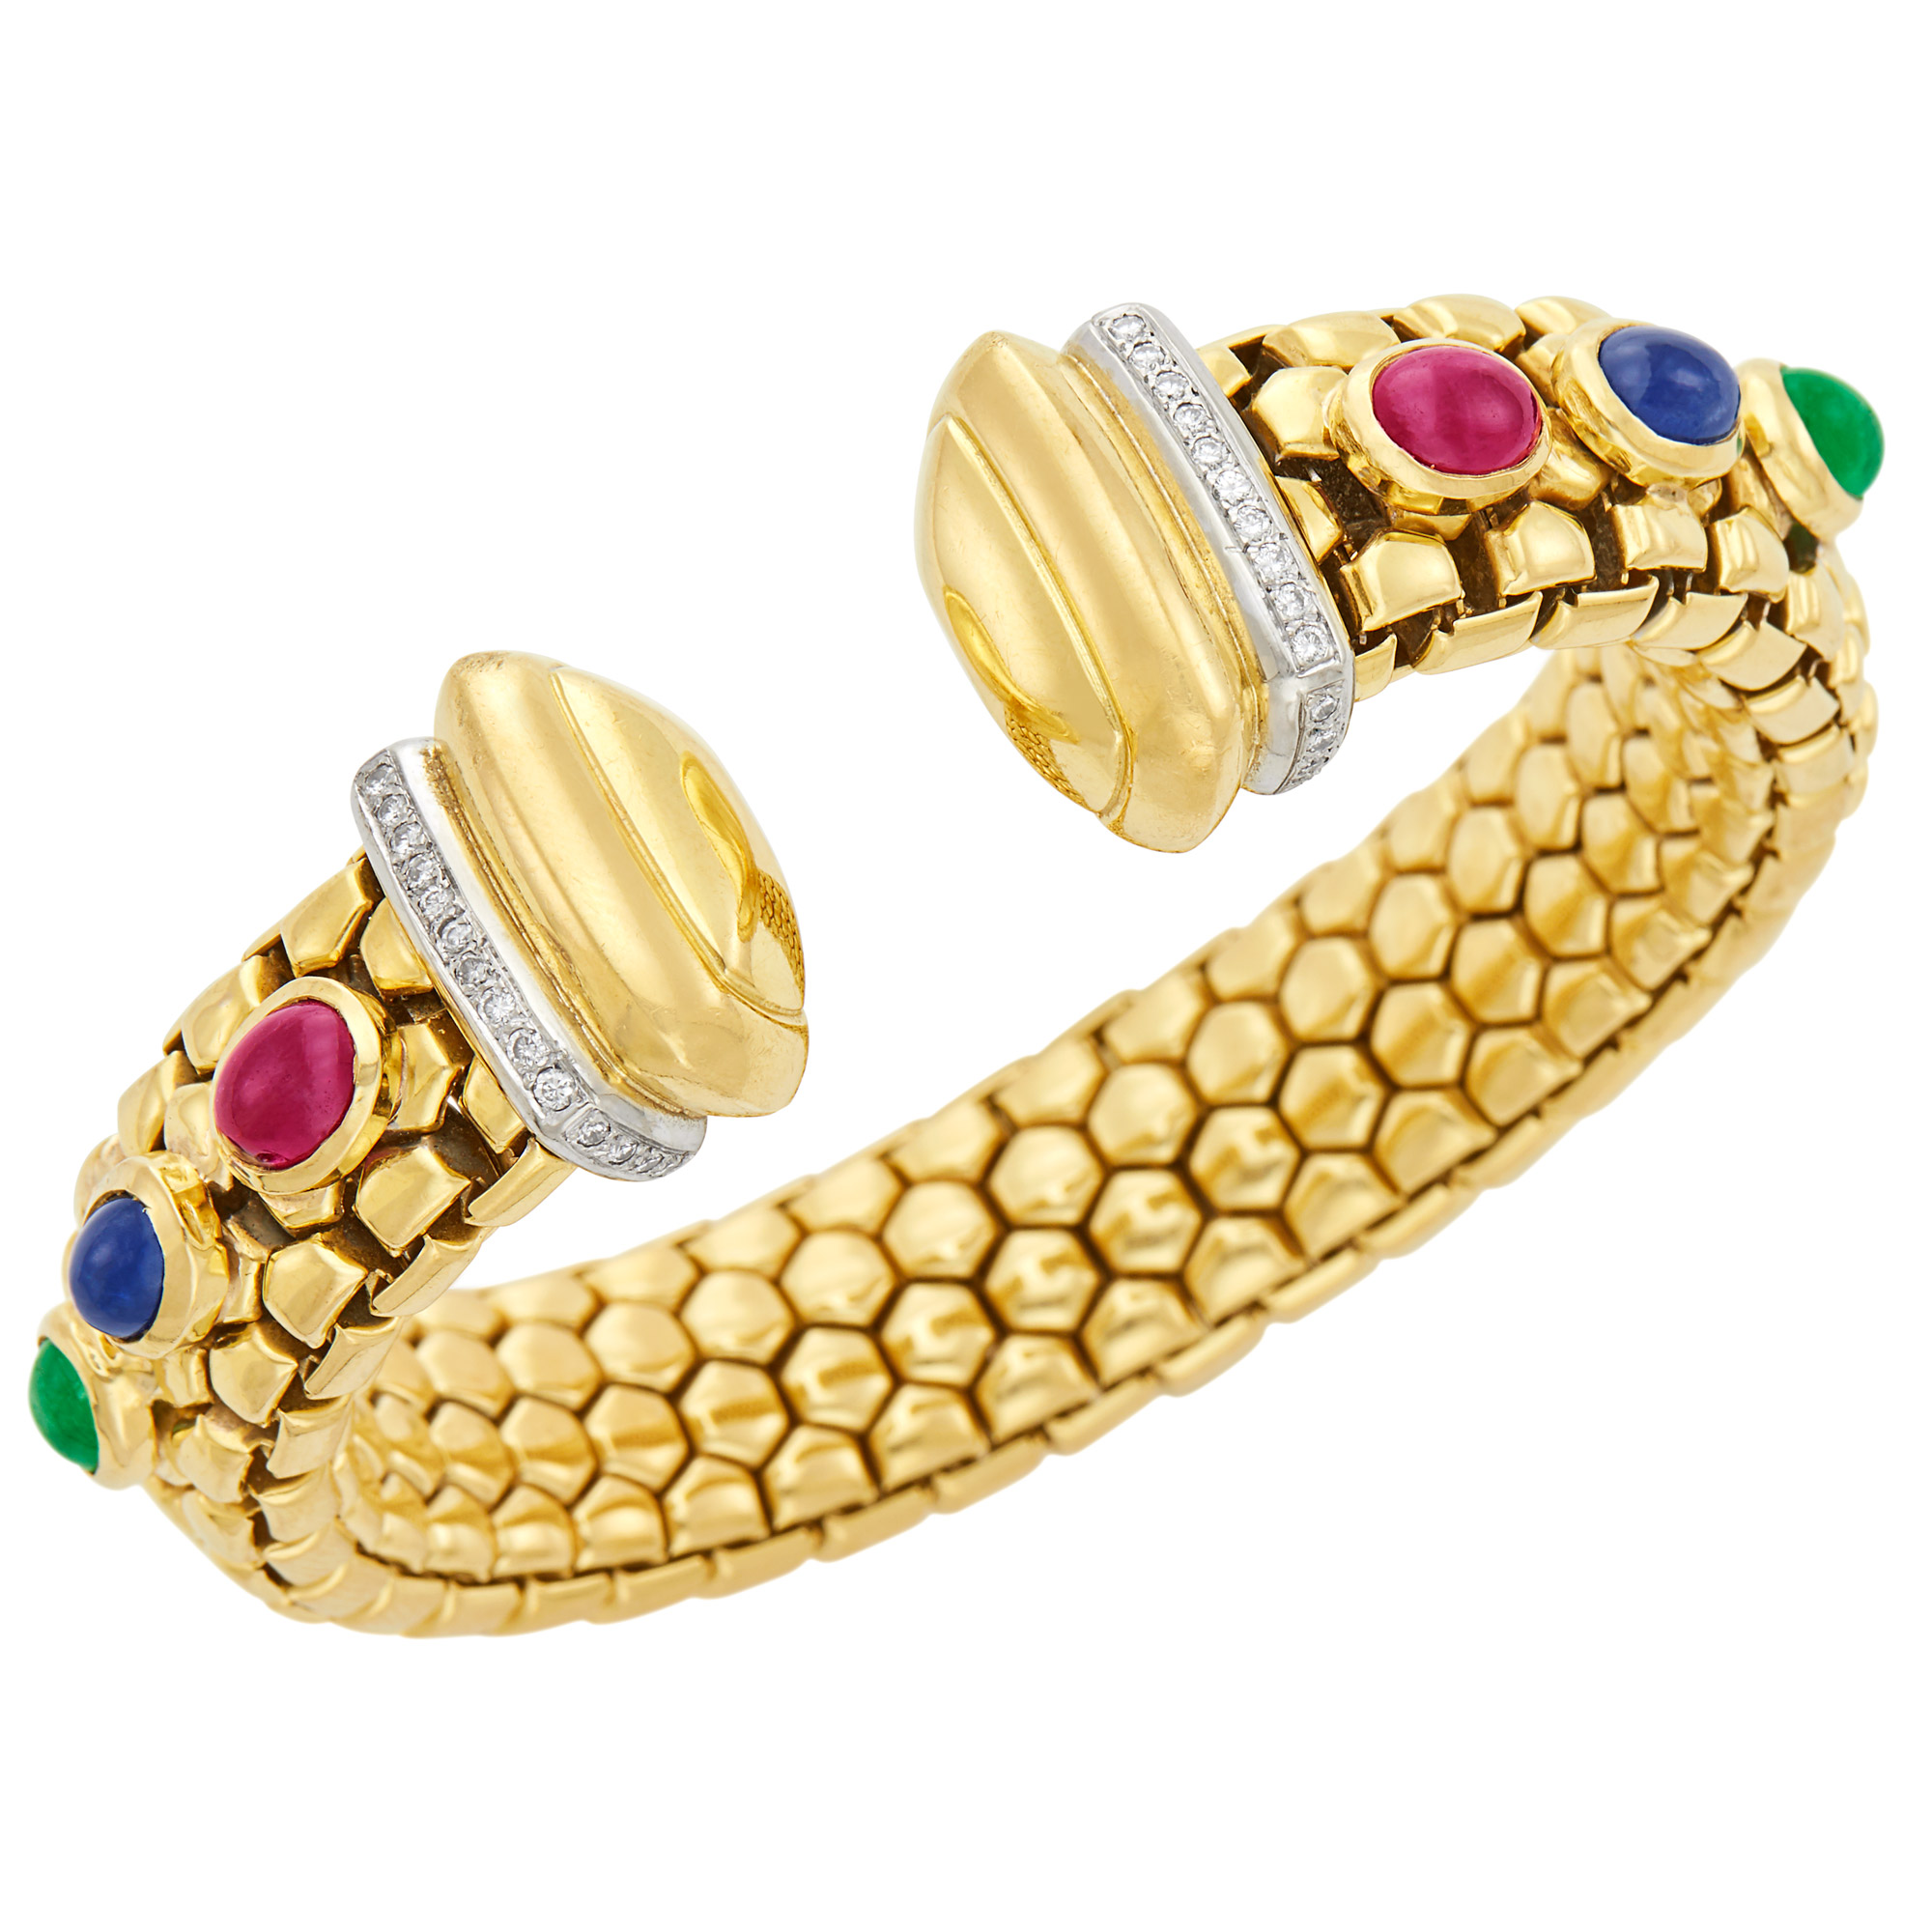 Lot image - Gold, Cabochon Colored Stone and Diamond Bracelet